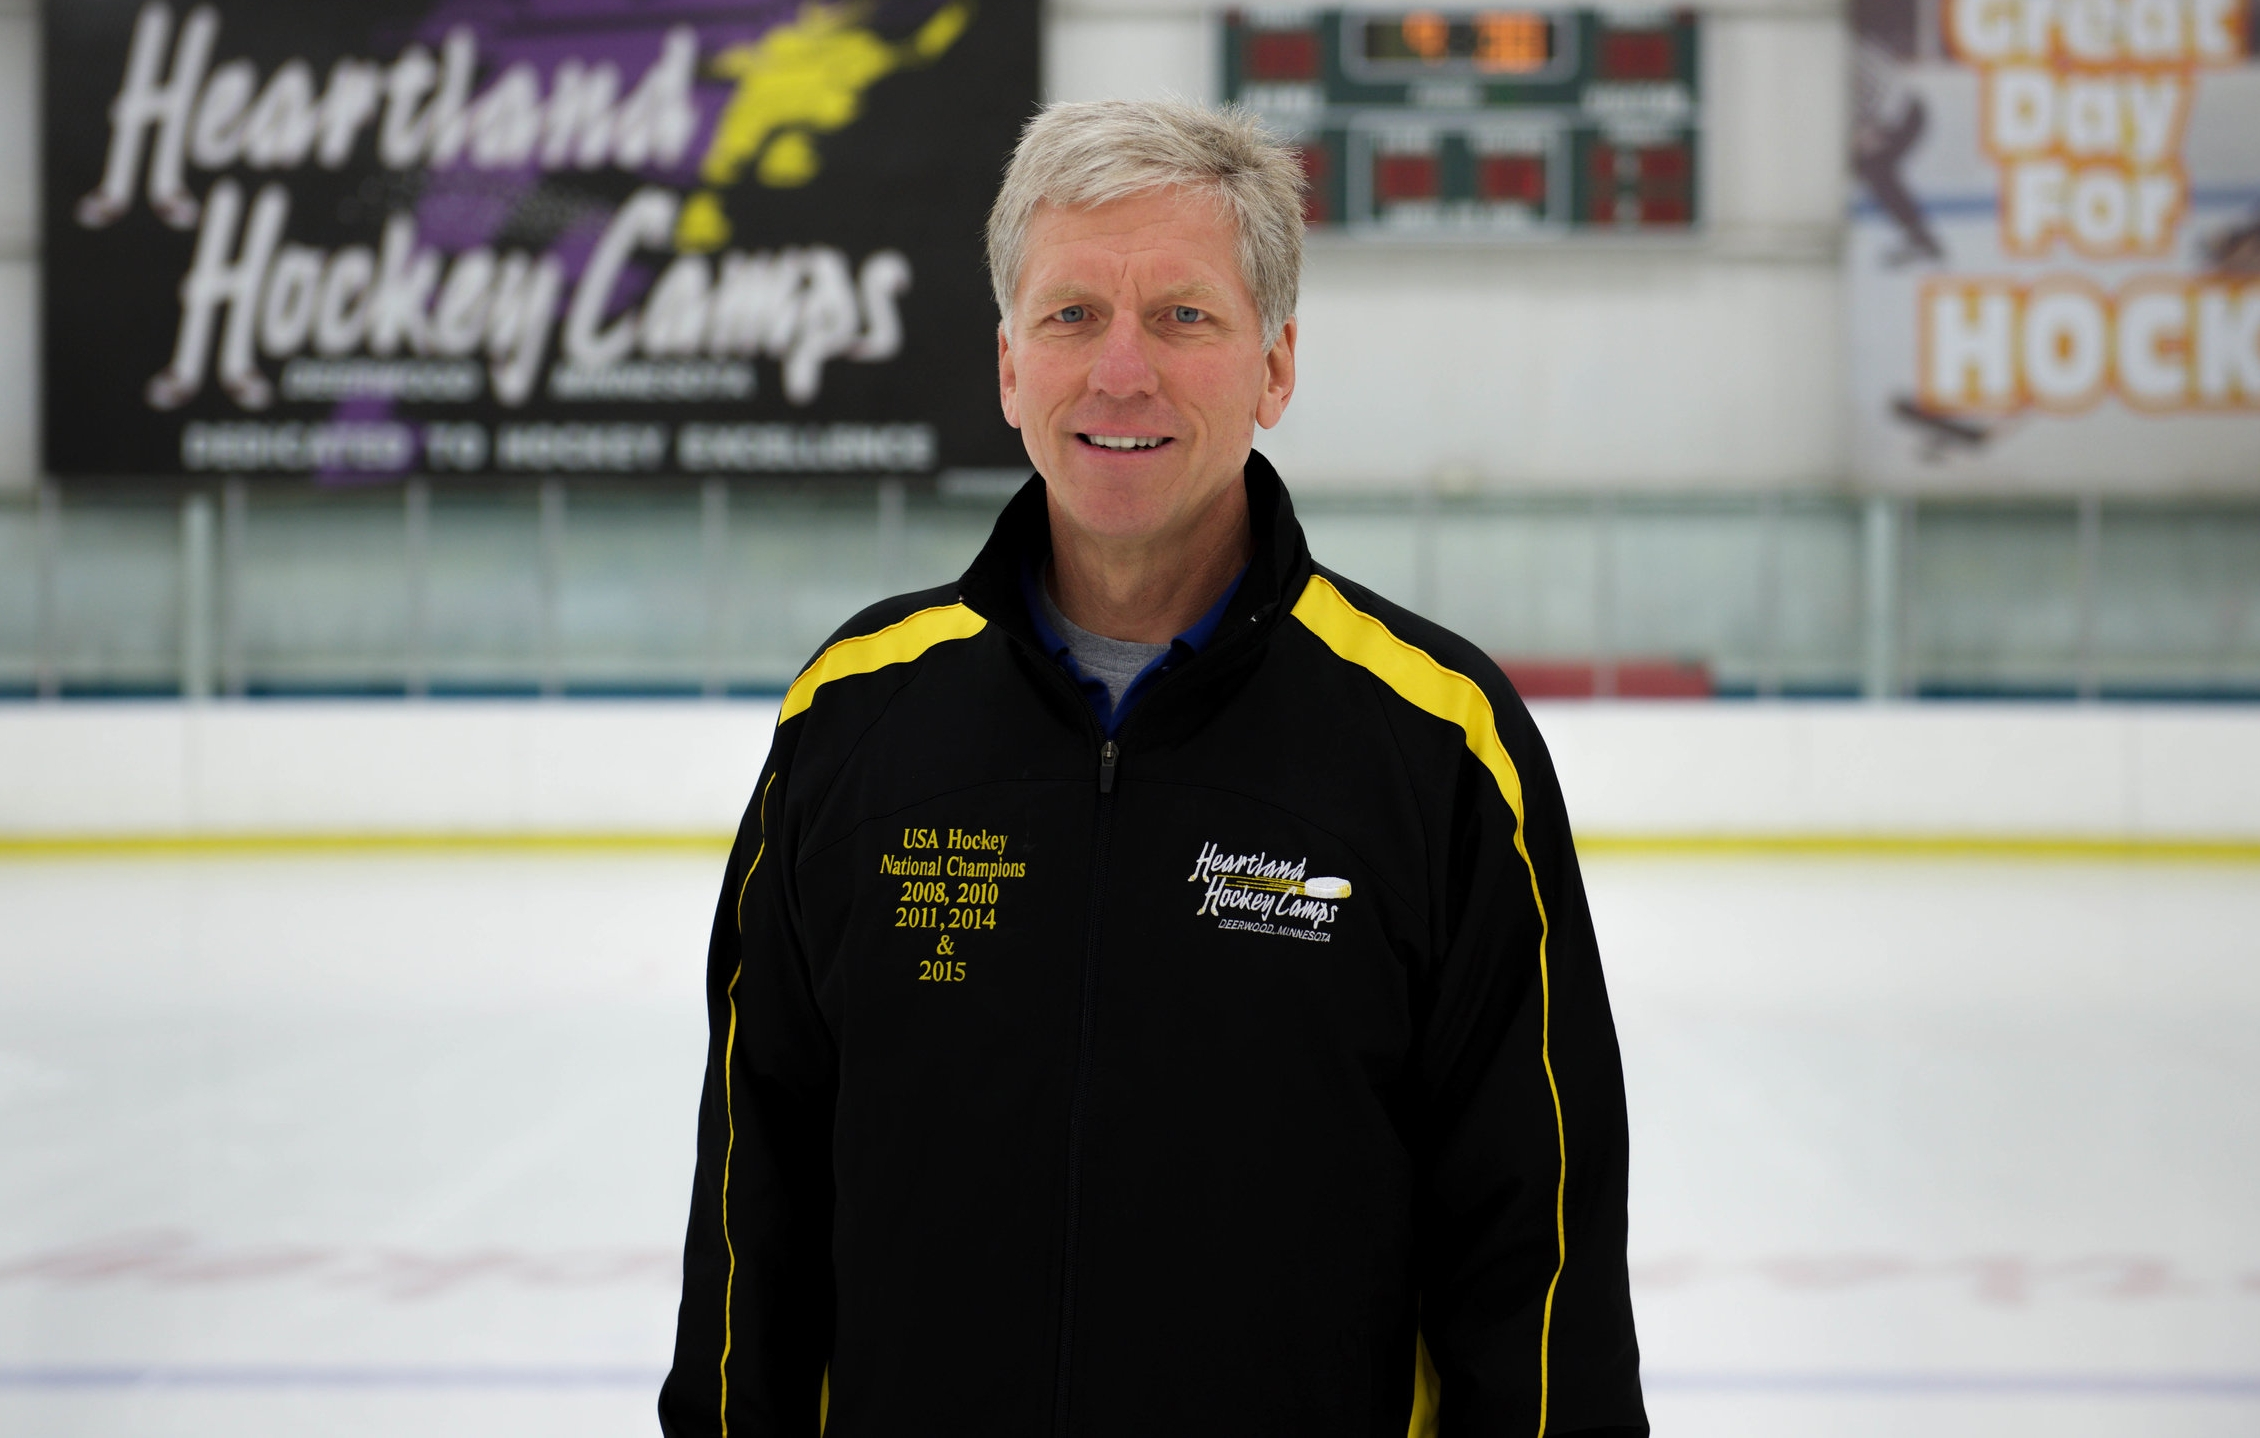 Jerry Johnson Head Coach/Director of Photography